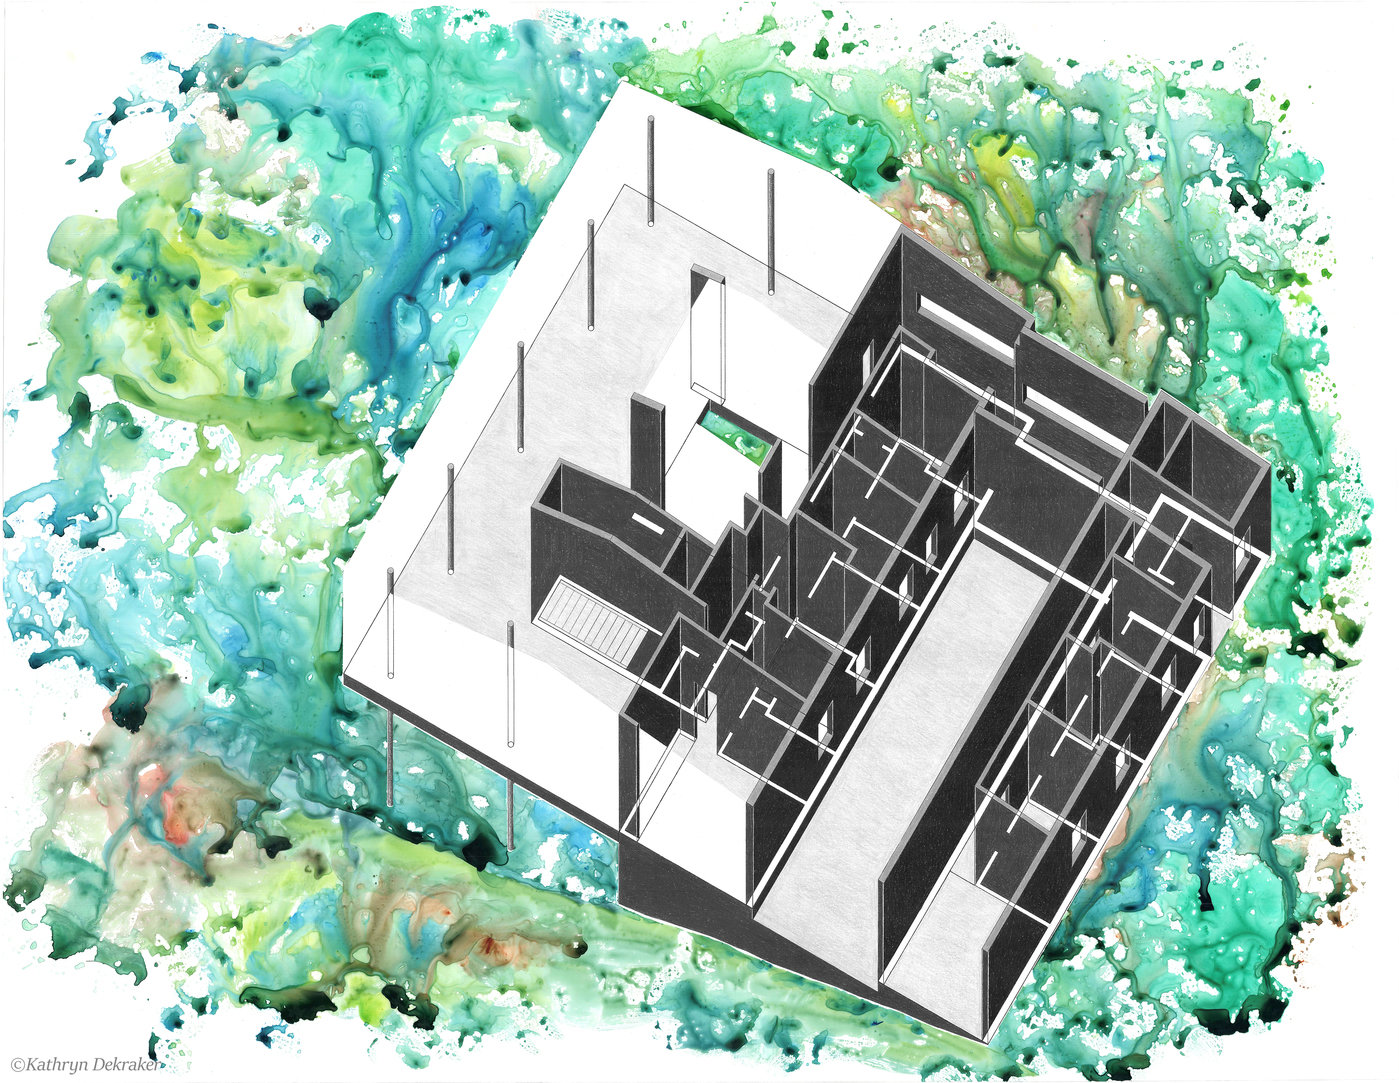 An axonometric crayon drawing of the glass house expresses contrast between the front and the rear and occupies a separate space from its rainforest